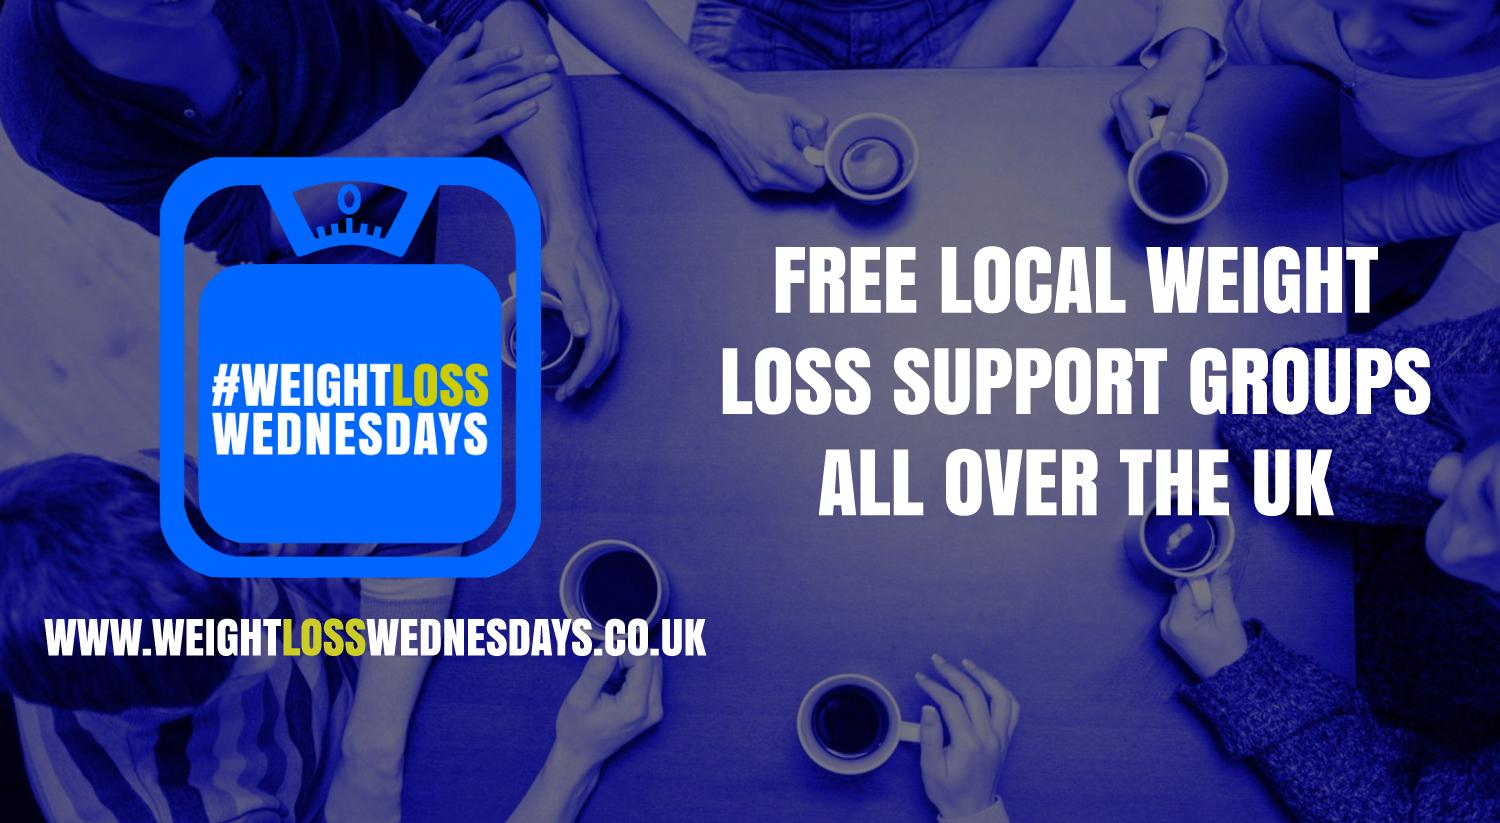 WEIGHT LOSS WEDNESDAYS! Free weekly support group in New Ferry